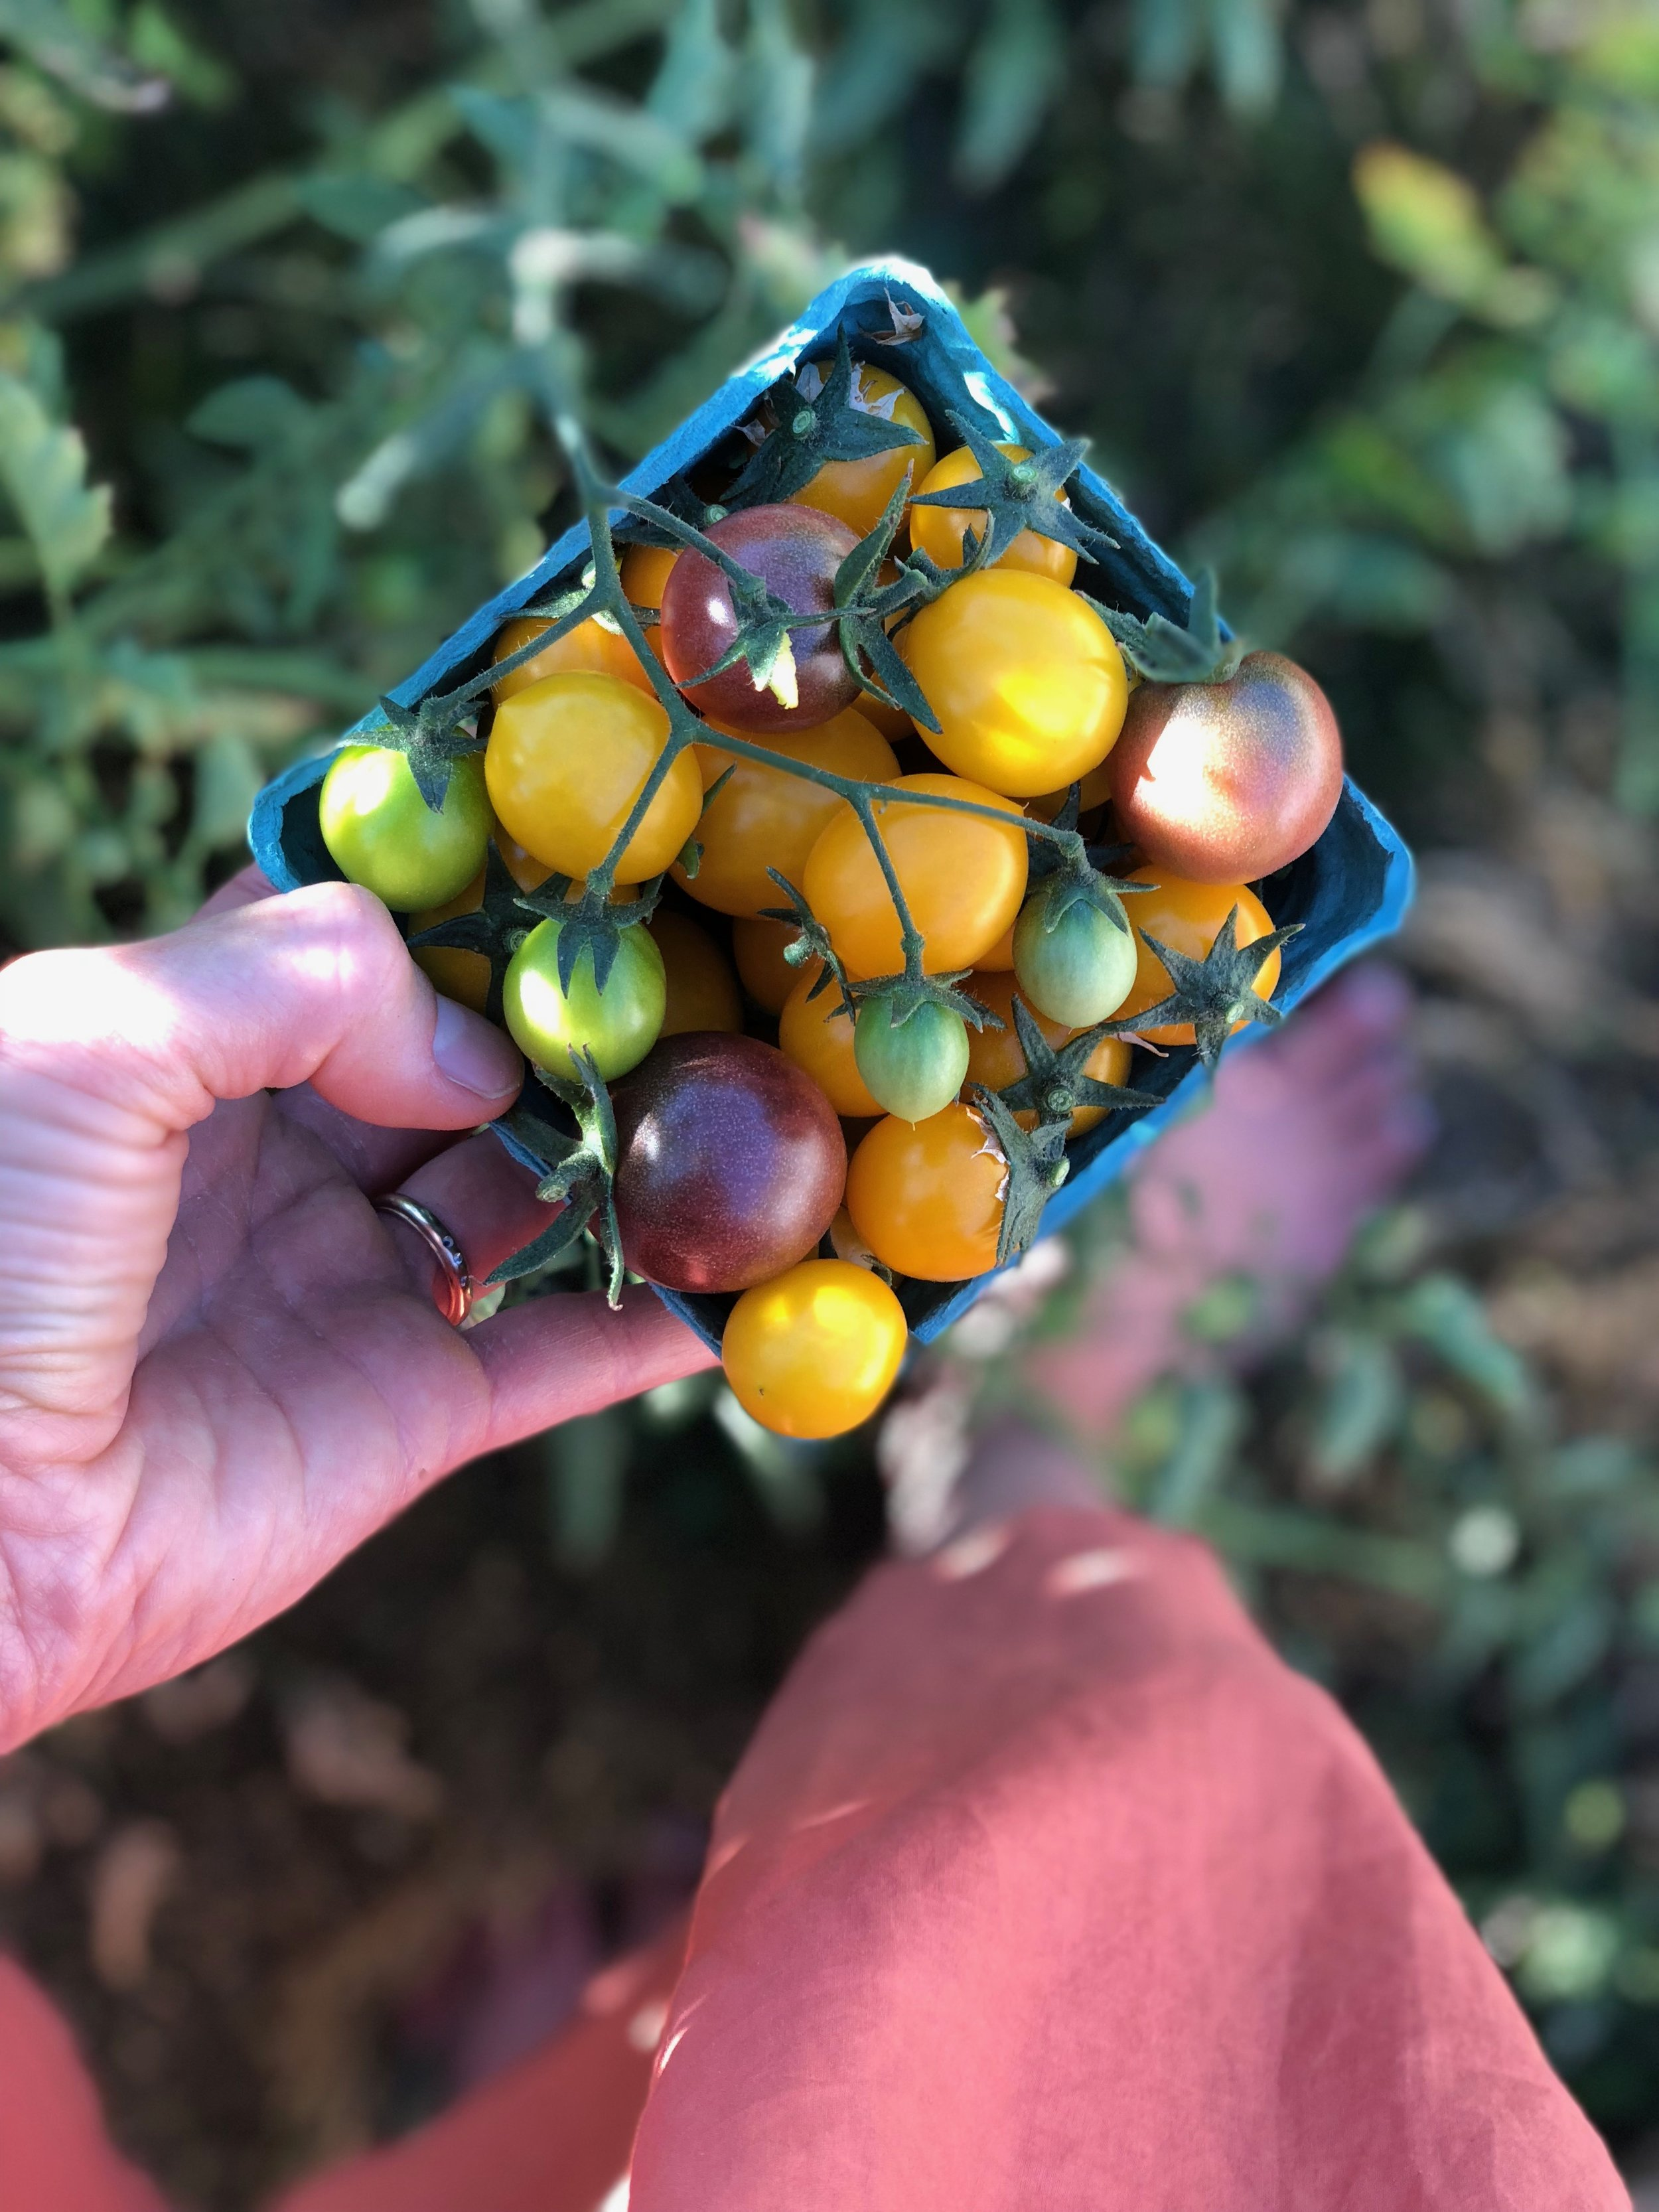 The EFN grows food on their 80 acre farm, but they also encourage all of us to plant an extra row in our home gardens to harvest and donate to a local food bank. I had more tomatoes than I could handle last summer and I love this idea!